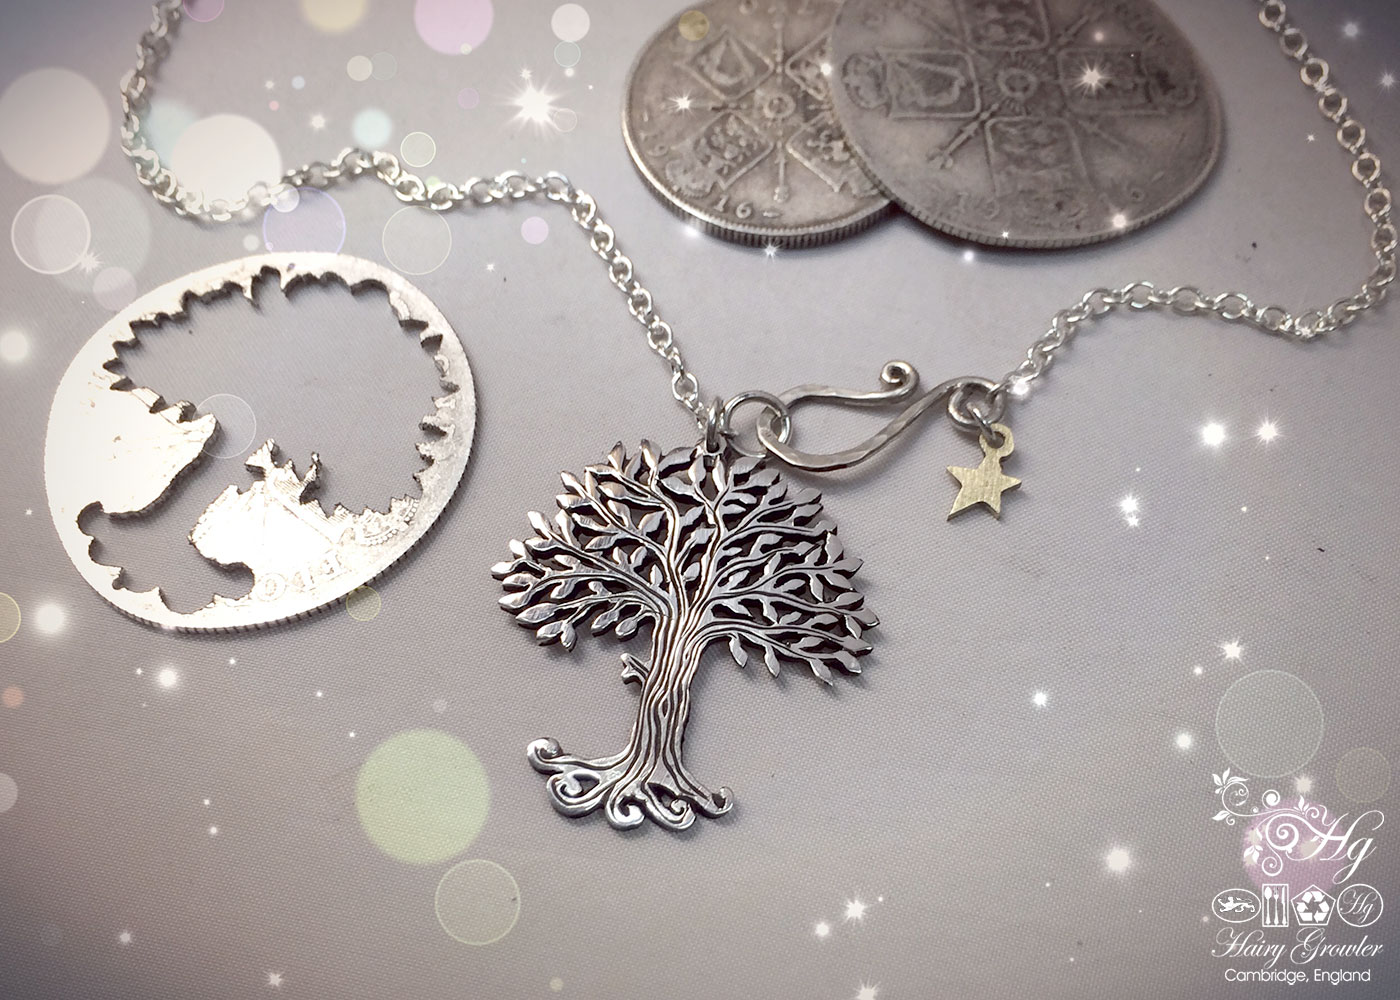 Handmade and repurposed silver Summer trees with leaves of pure silver made from a silver coin